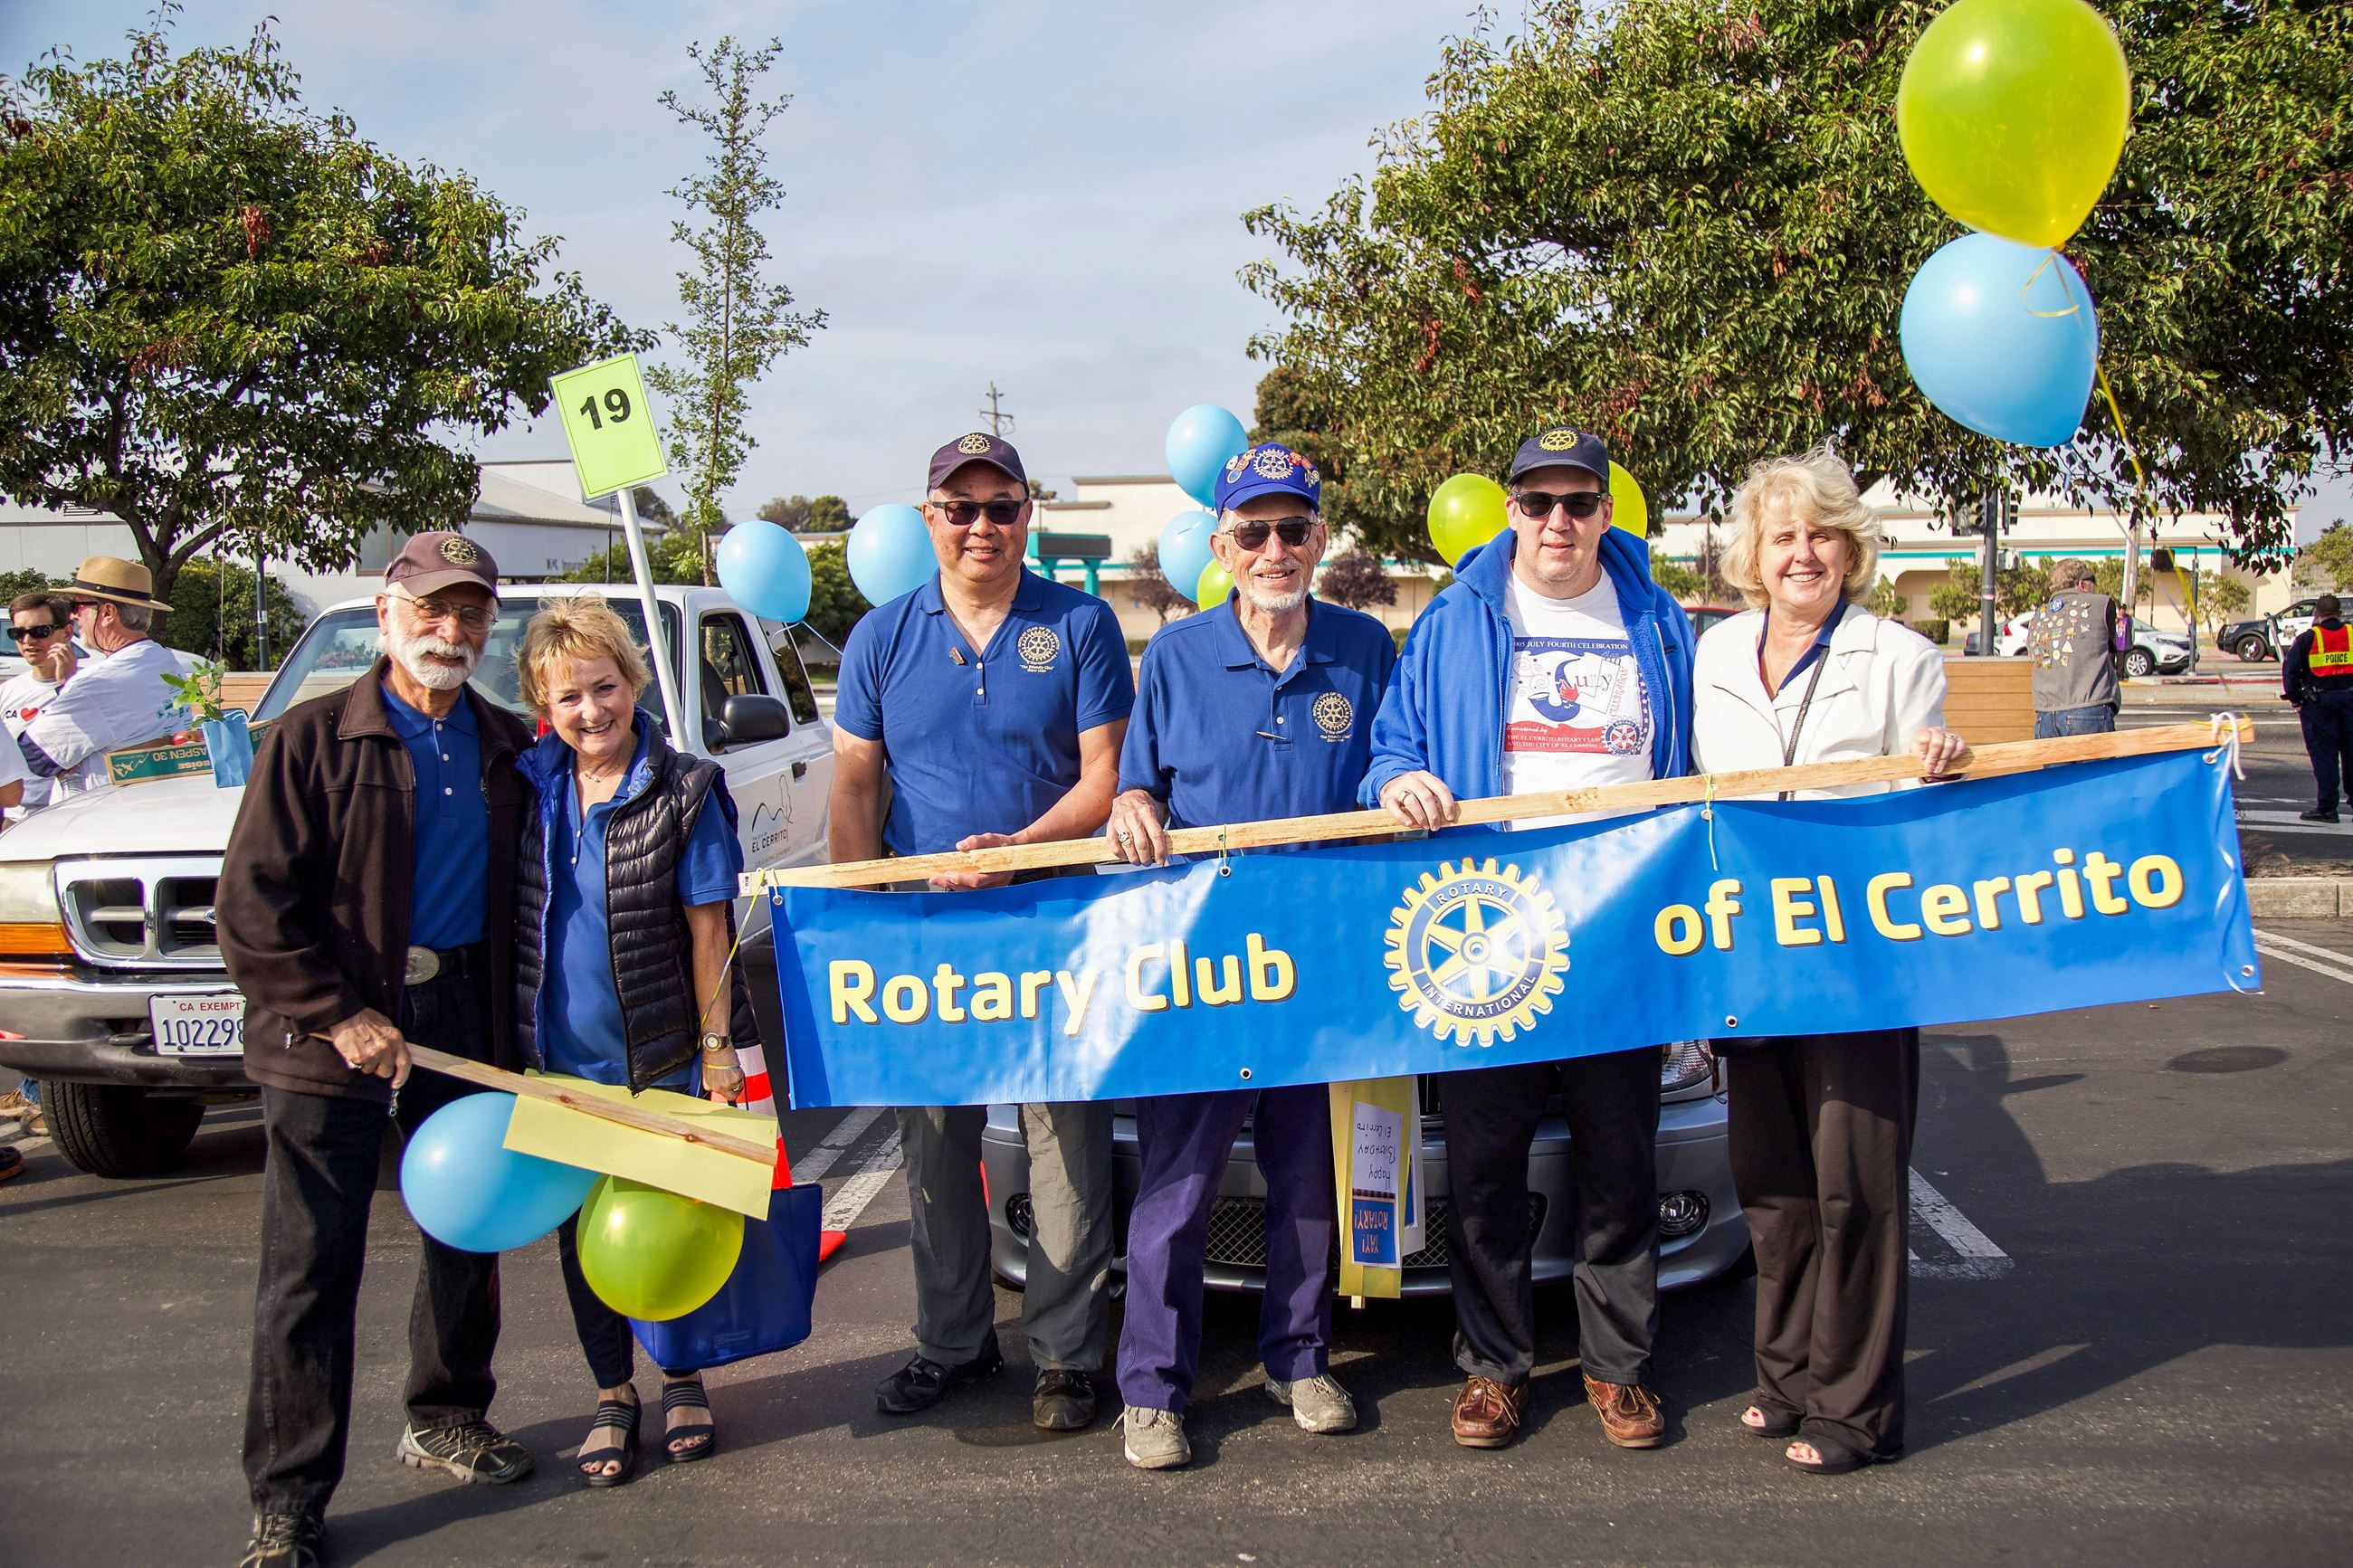 026 Rotary - Photo by Marin Stuart